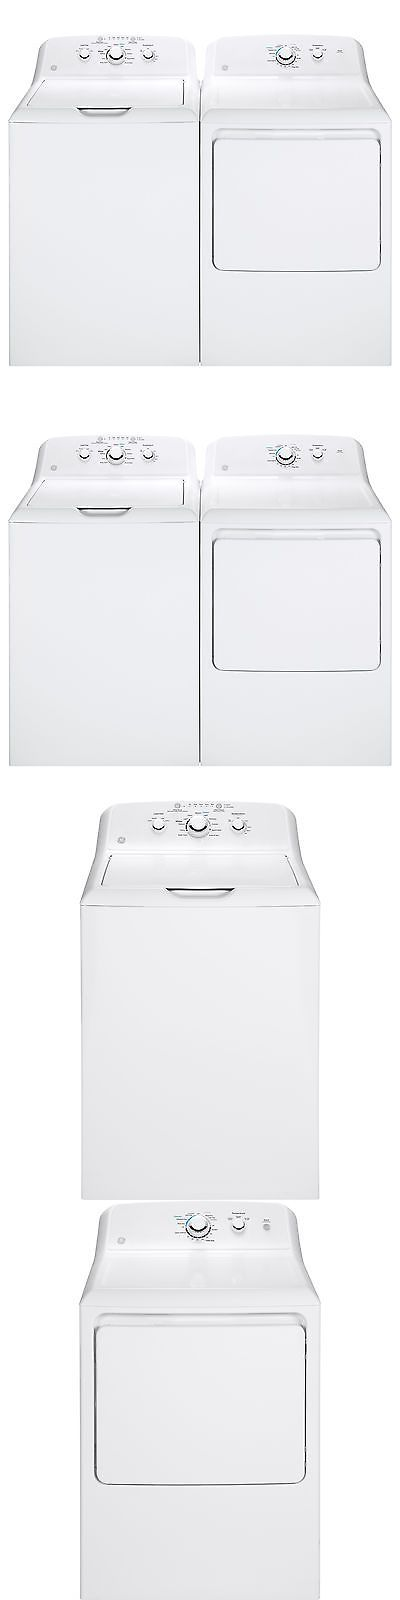 Washer and Dryer Sets 71257: Ge White Stainless Steel Top-Load Washer And Gas Dryer Pair -> BUY IT NOW ONLY: $1428.99 on eBay!